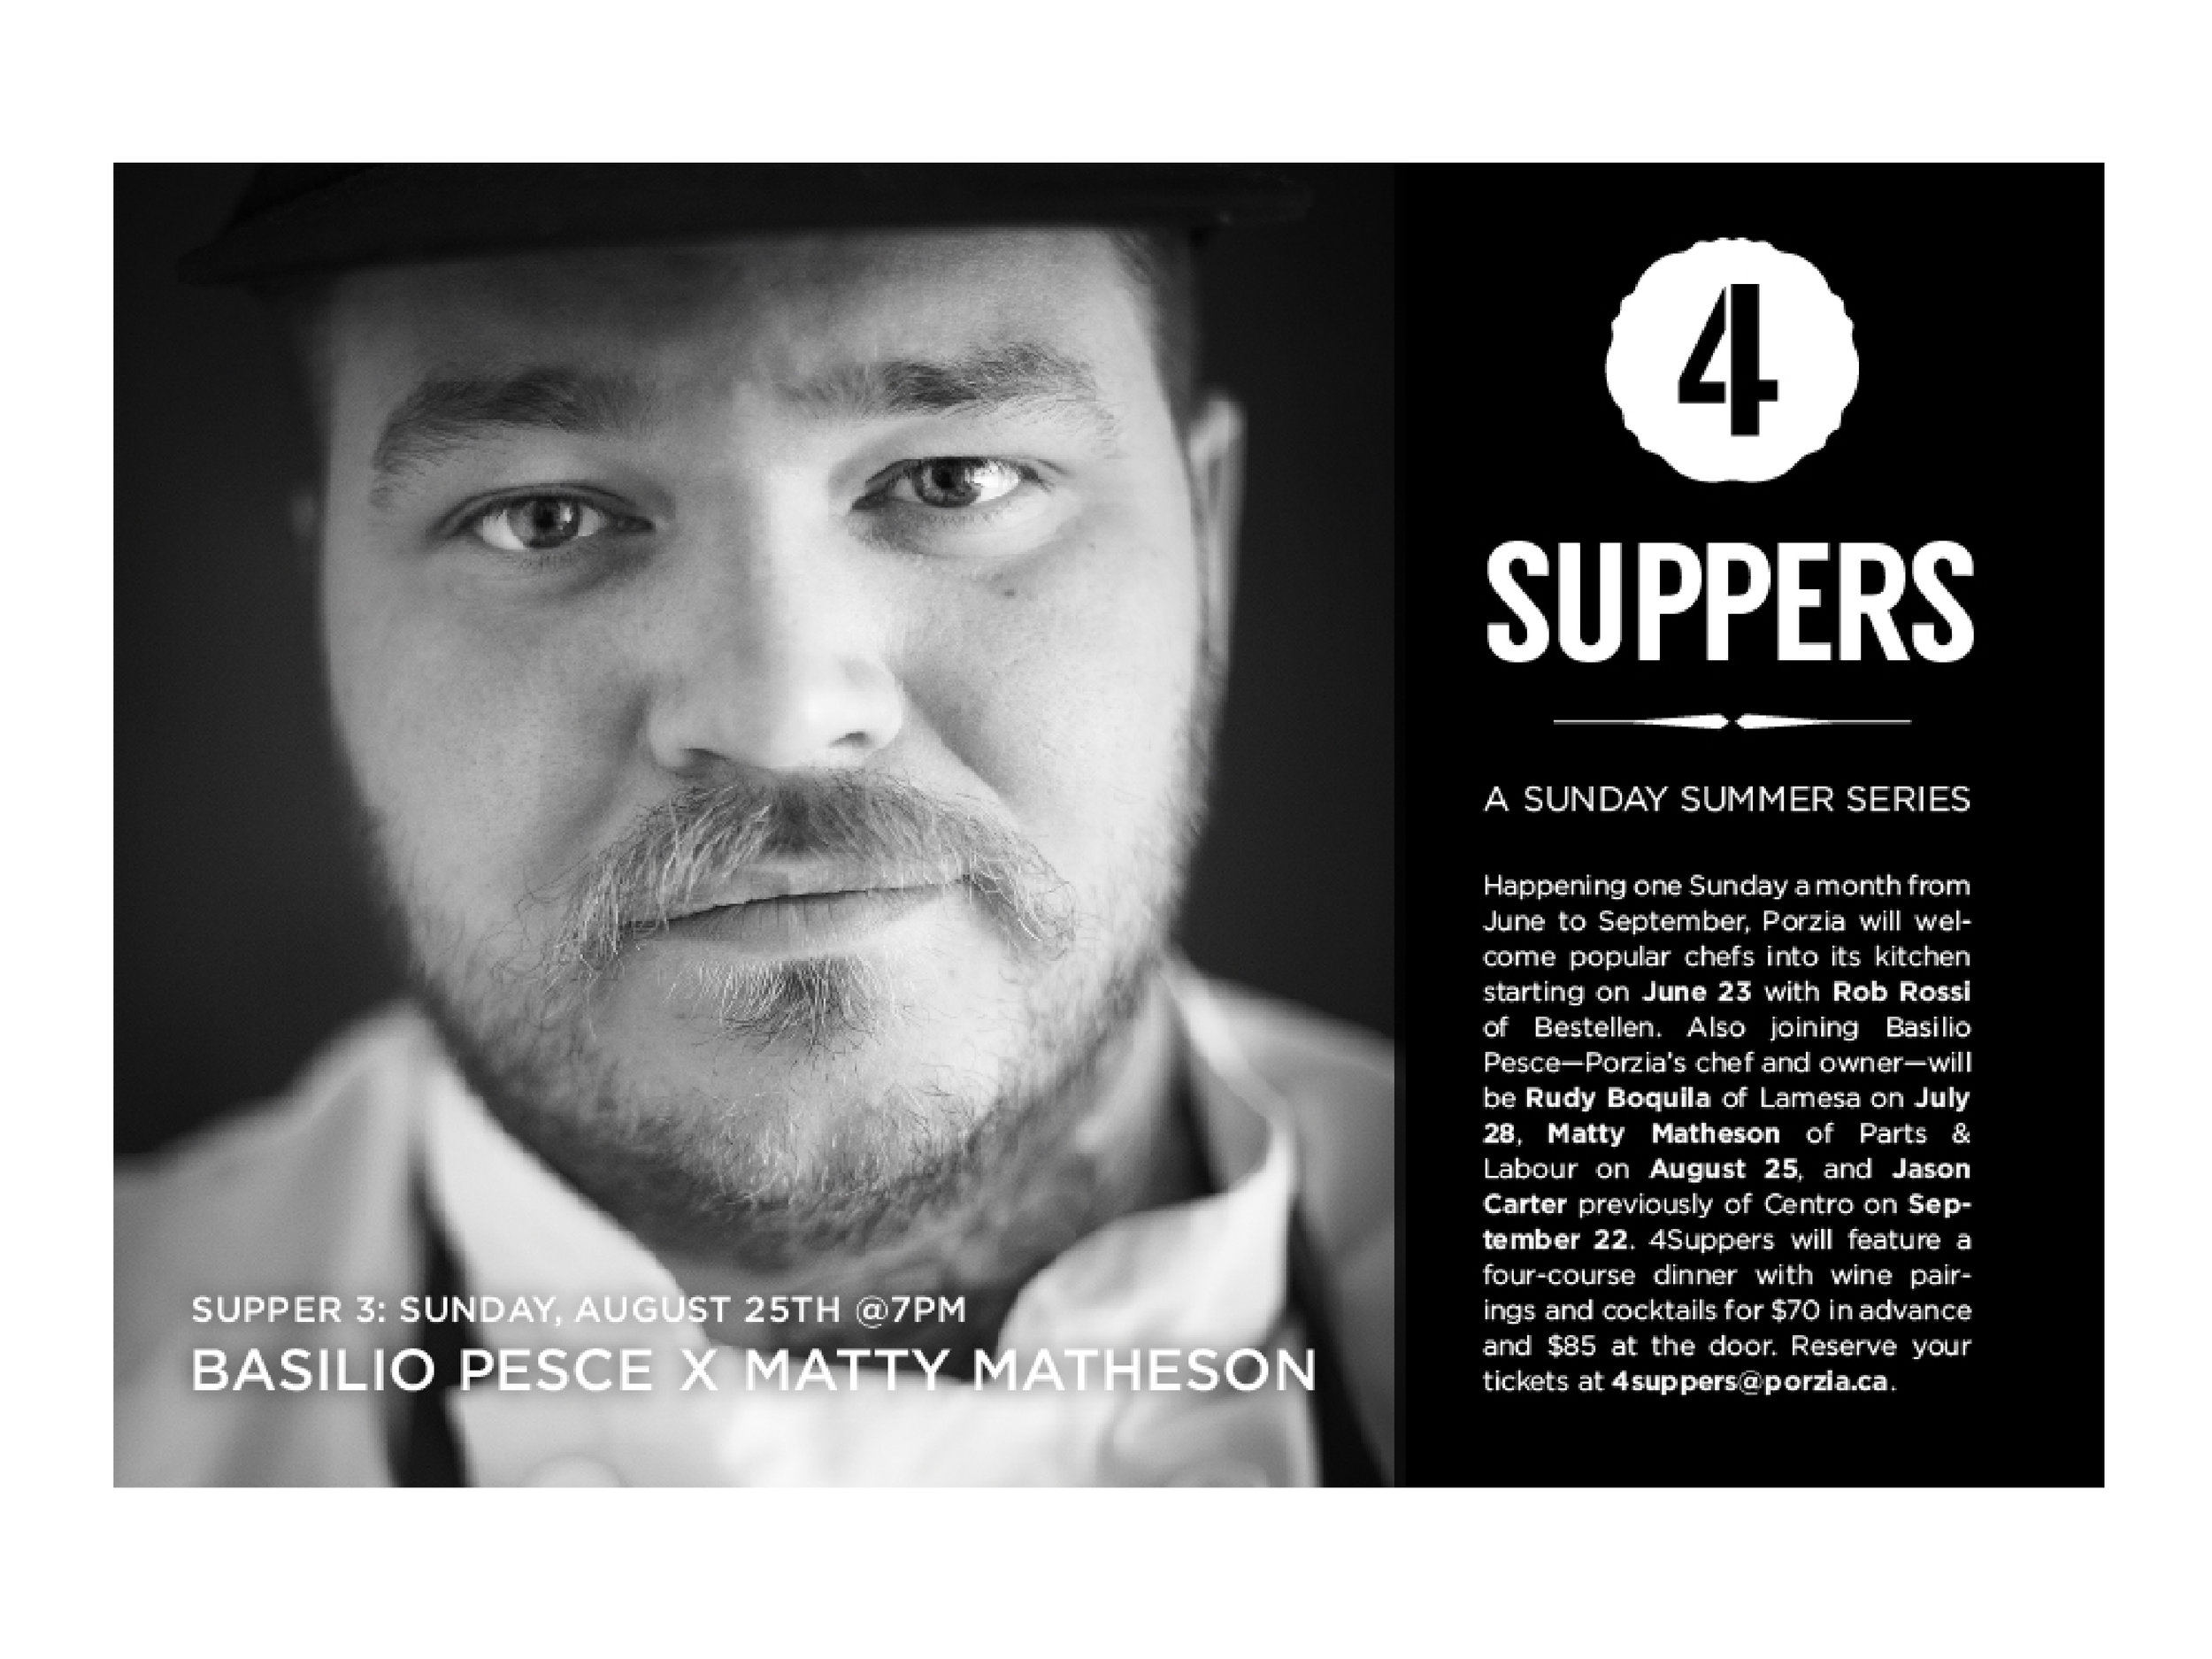 4suppers3-01.jpg